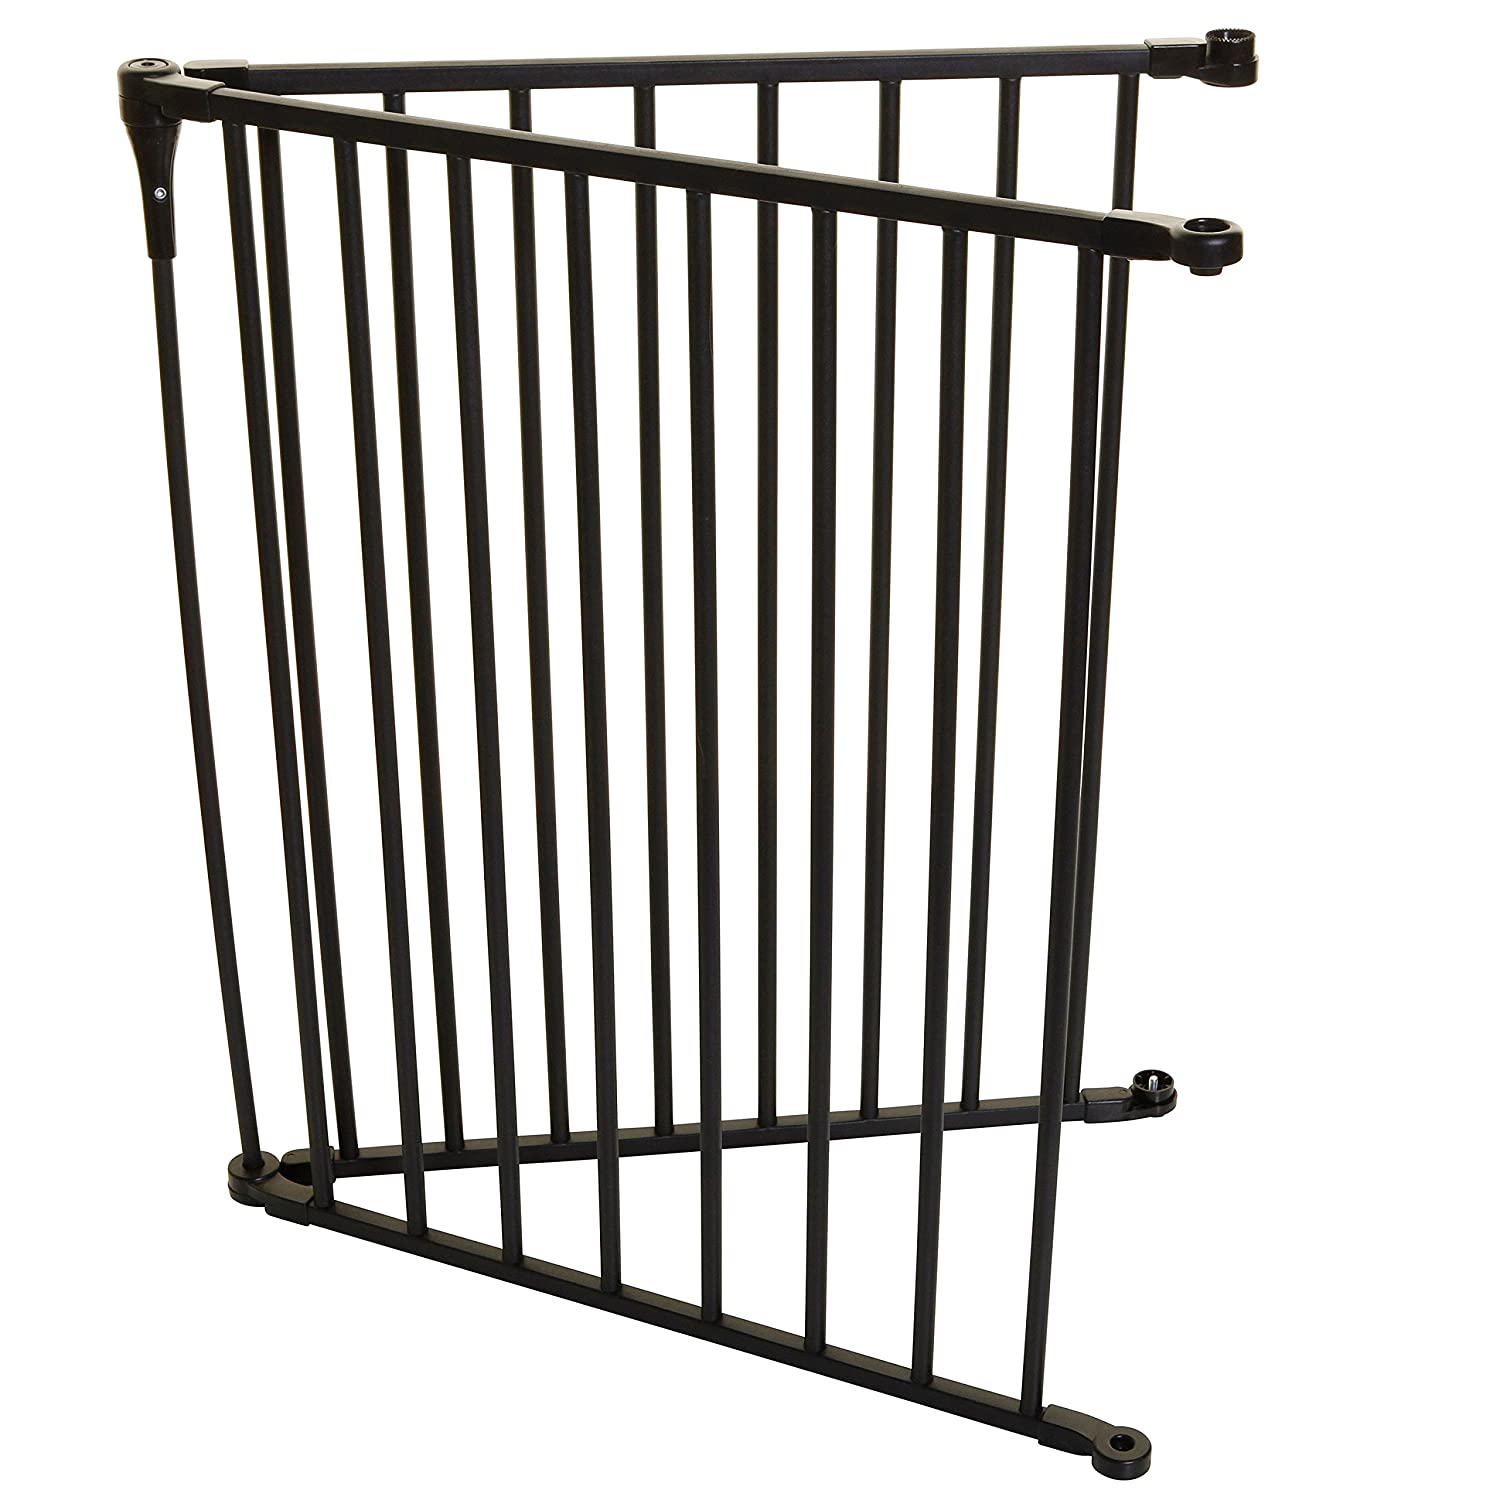 Safety Innovations No Hole Stairway Baby Gate Mounting Kit – Fits Posts from 2 3 4 inches to 3 5 8 inches Wide with Square or Round Tops – No Adhesives On Or Screws in Your Posts, 1-Pack